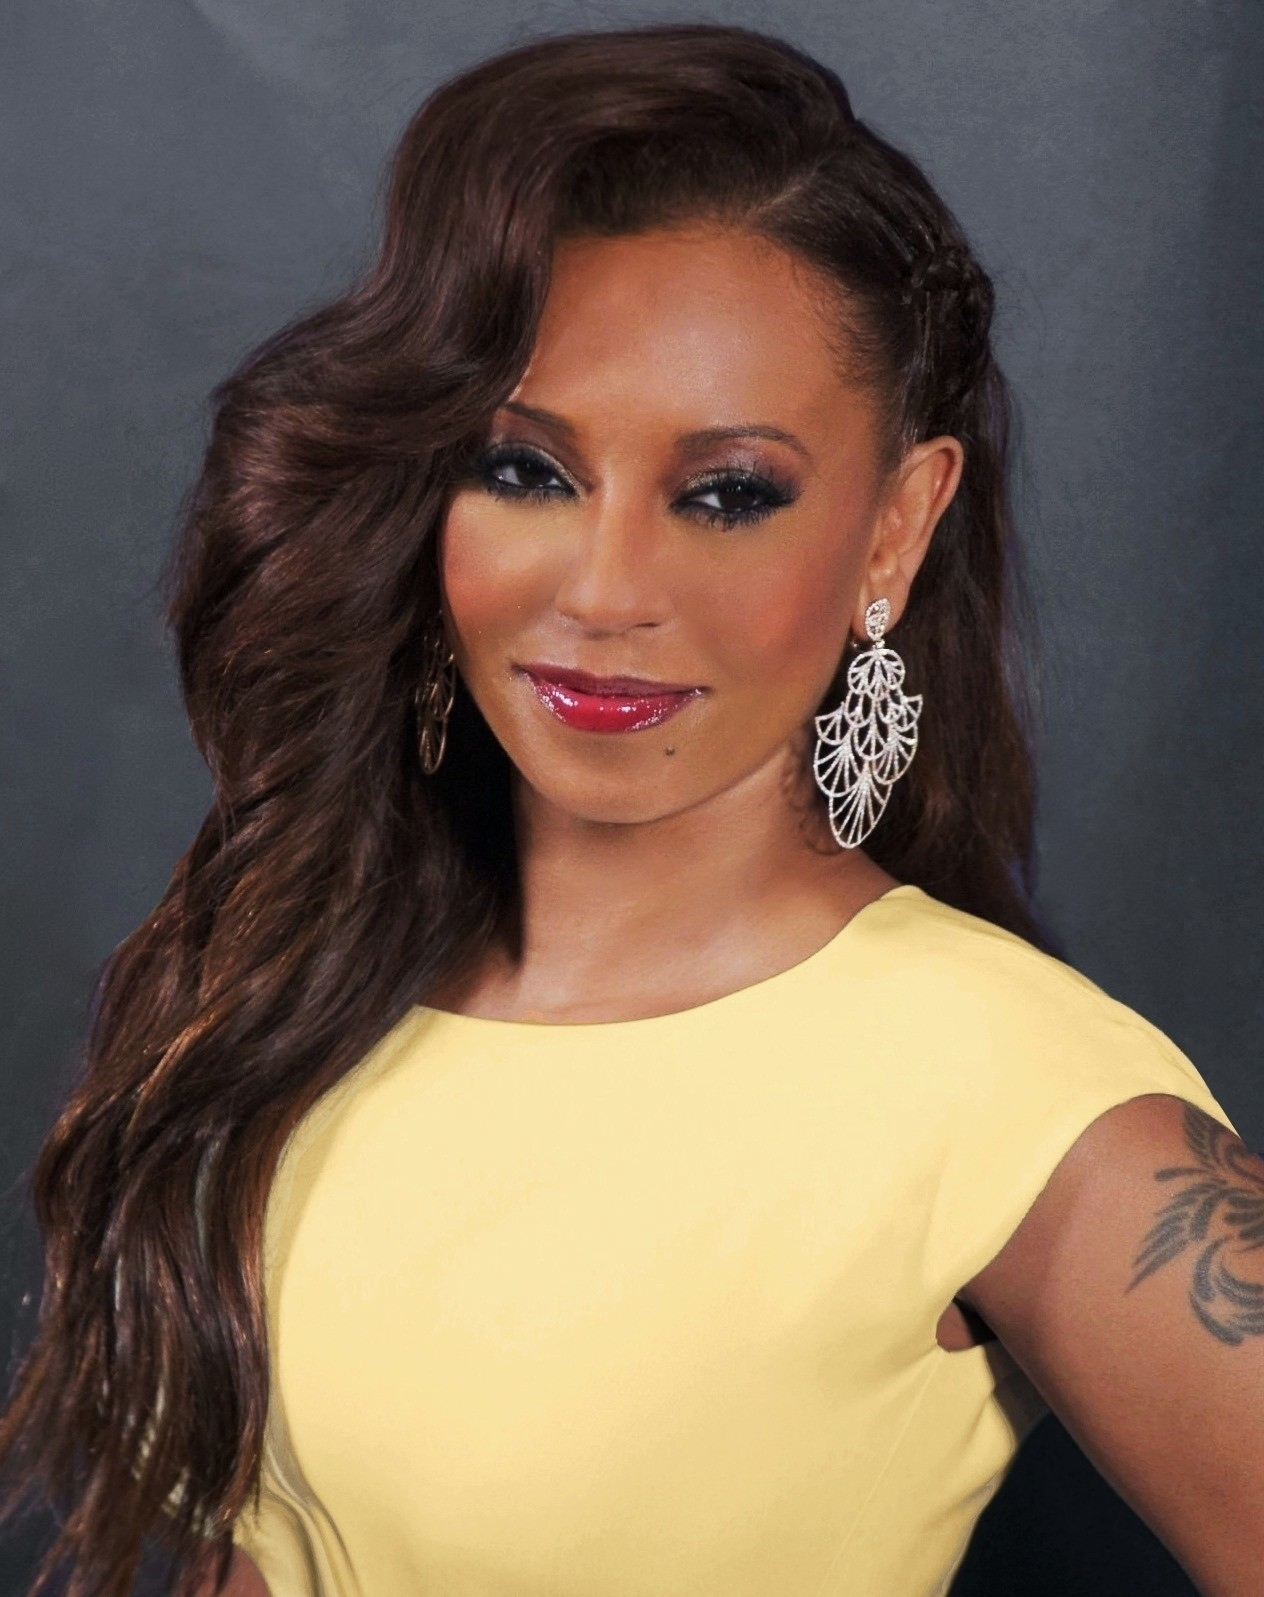 Angelica Chain Sex mel b - wikipedia